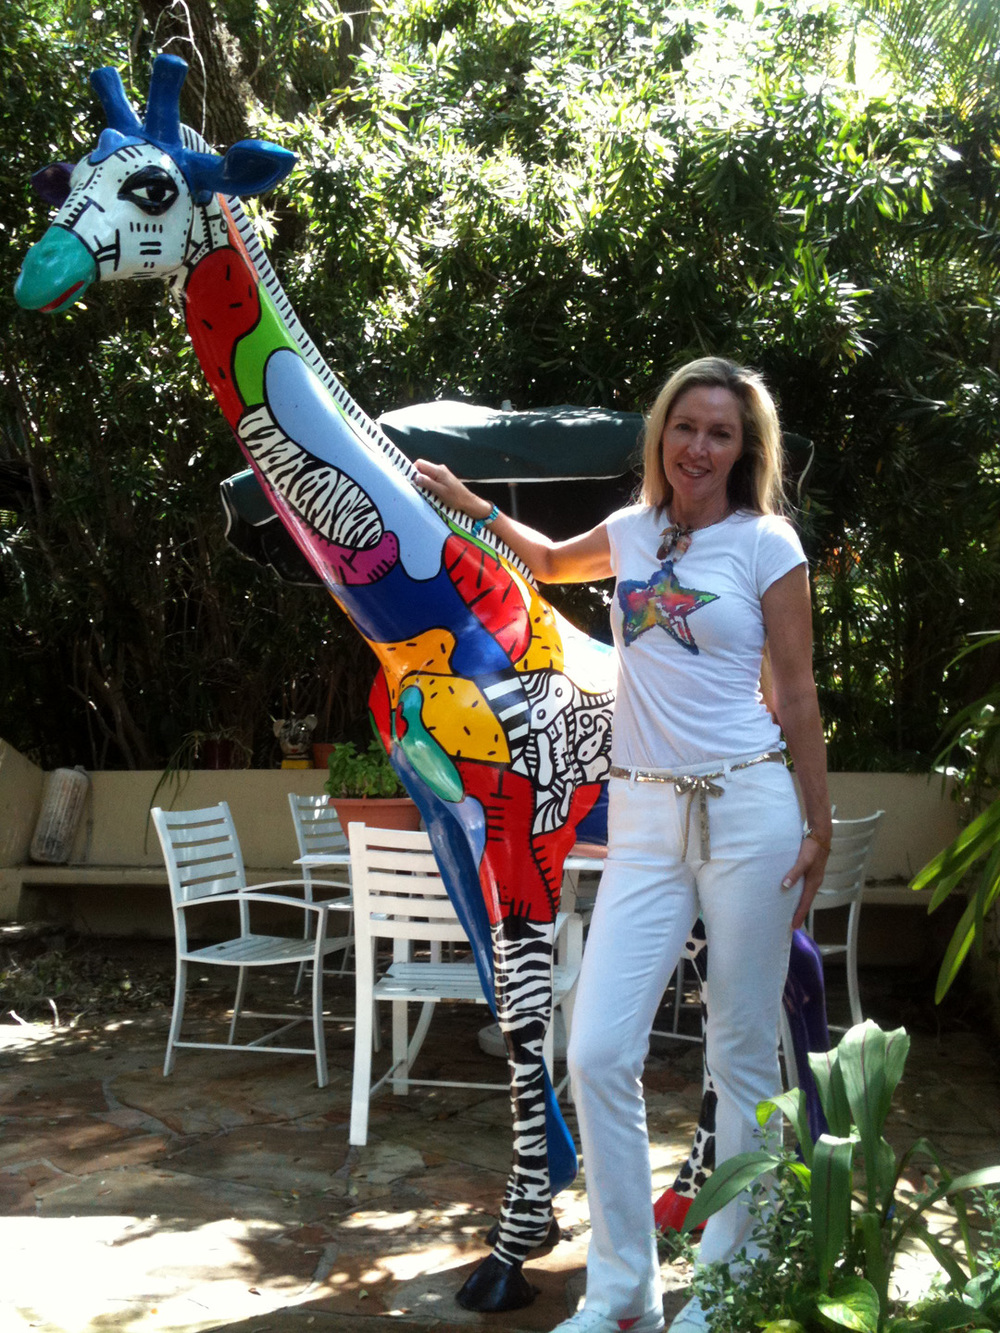 marcie ziv with giraffe 3 4 view.jpg